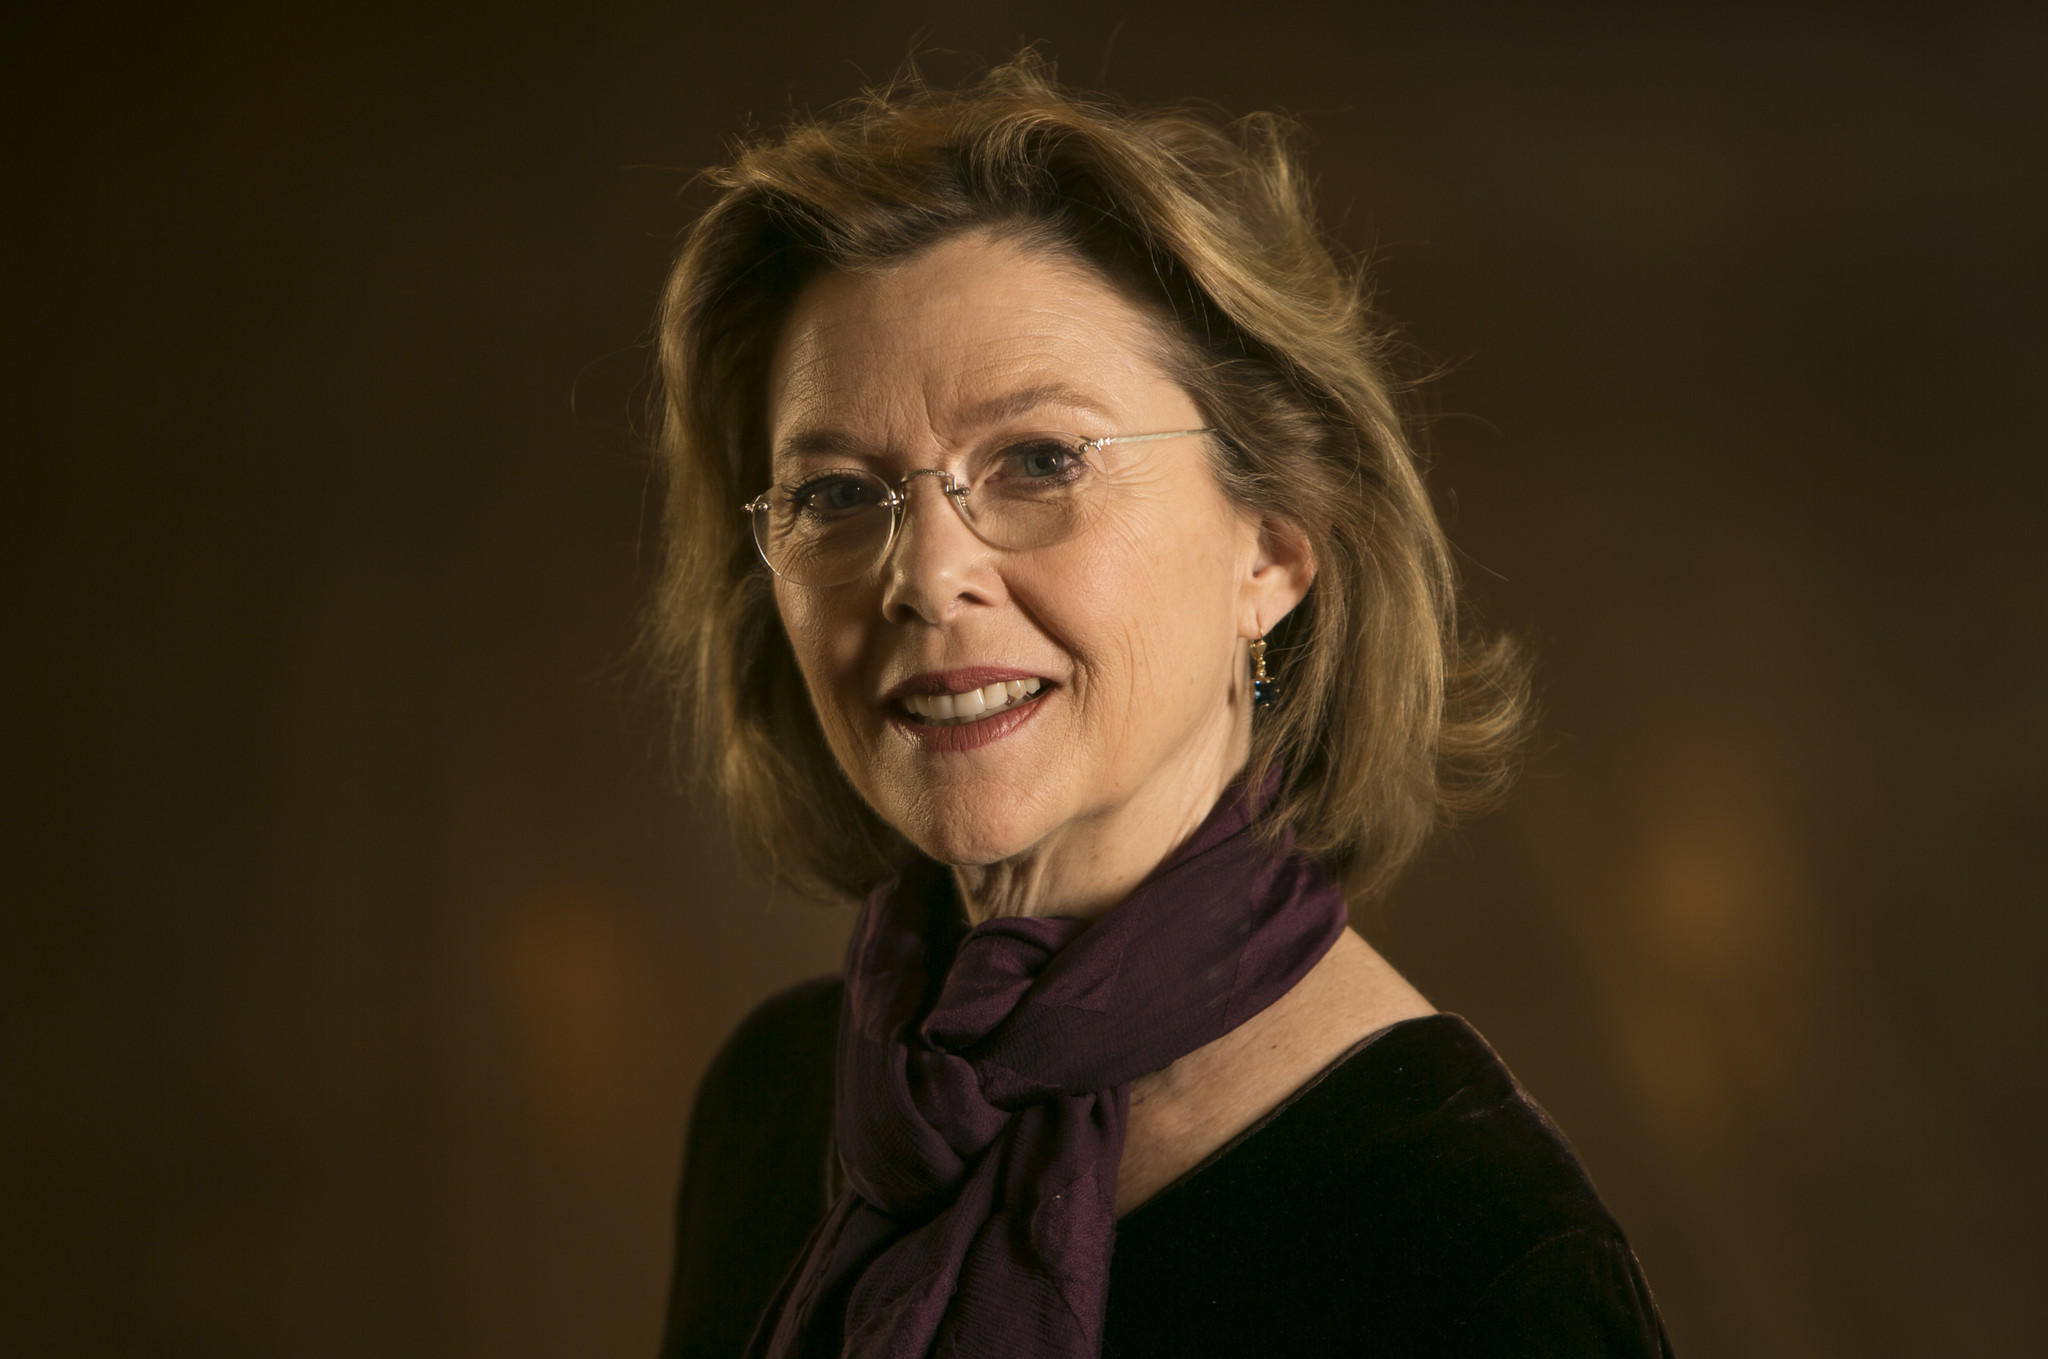 Annette Bening to Chair the Competition Jury of the 74th Venice Film Festival